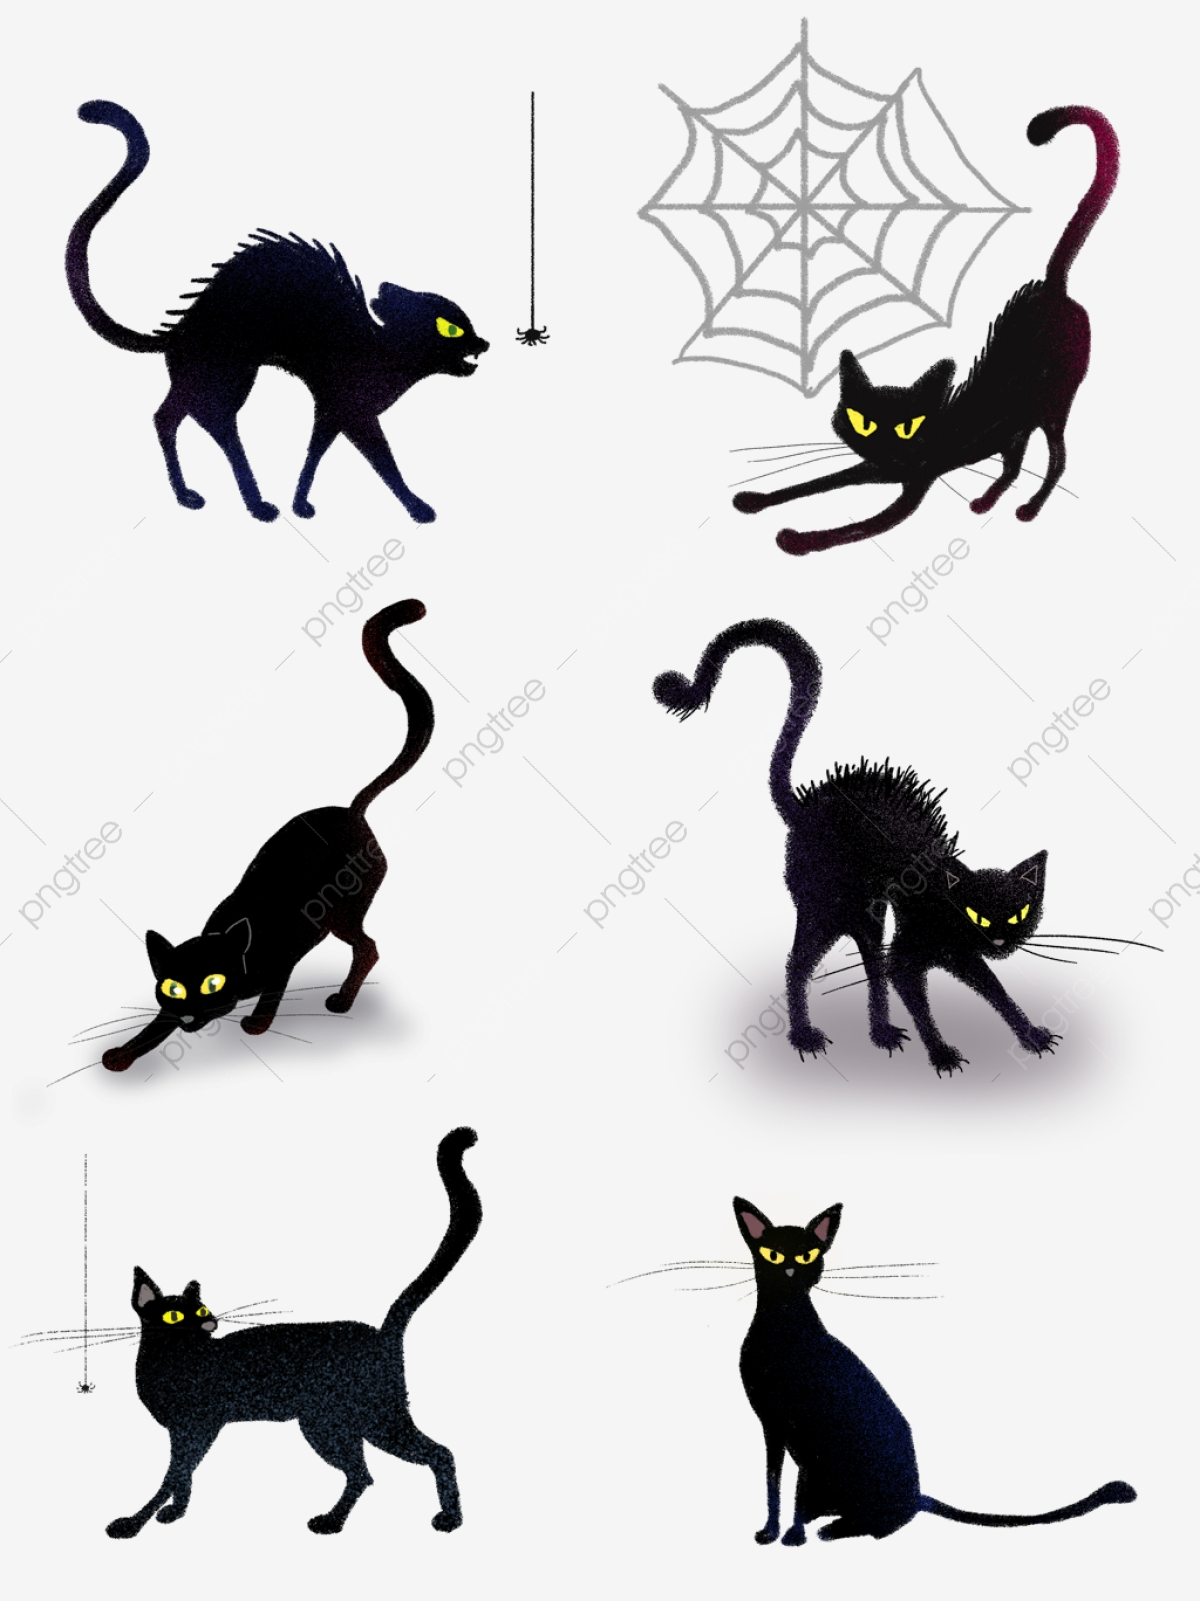 Hand Drawn Halloween Creative Black Cat Account Commercial